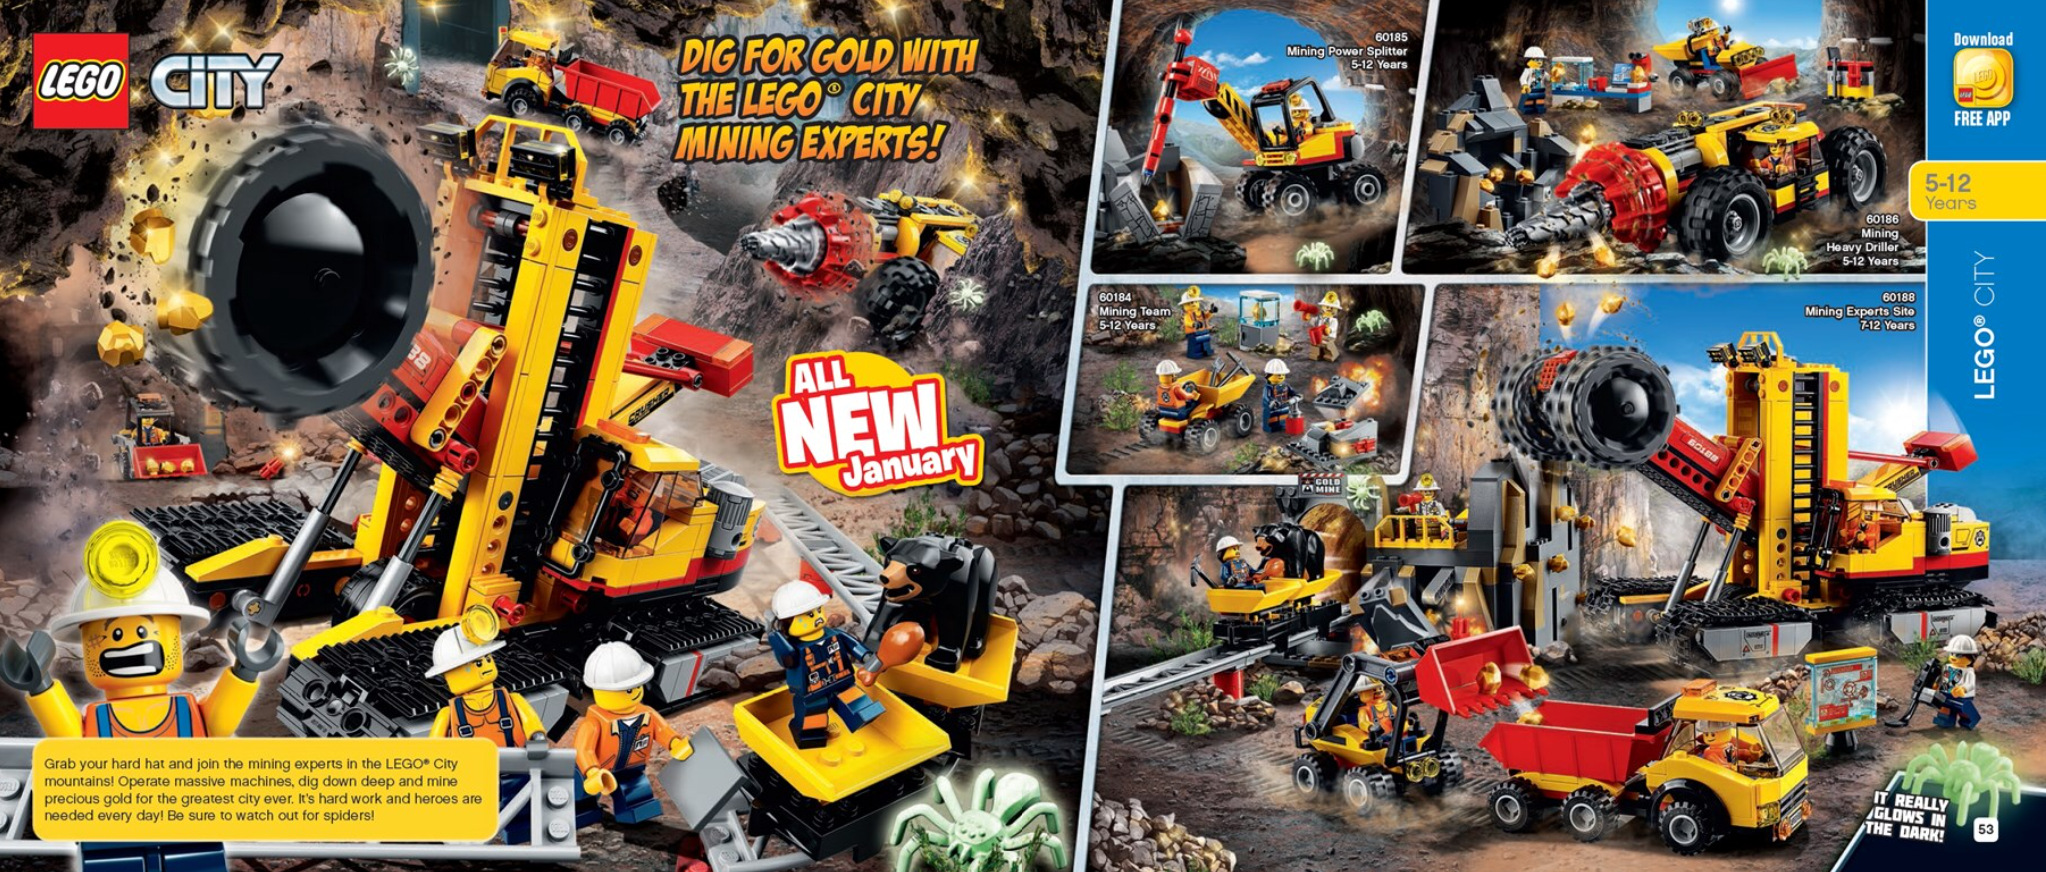 Australian Lego Release Dates First Half Of 2018 Sets January